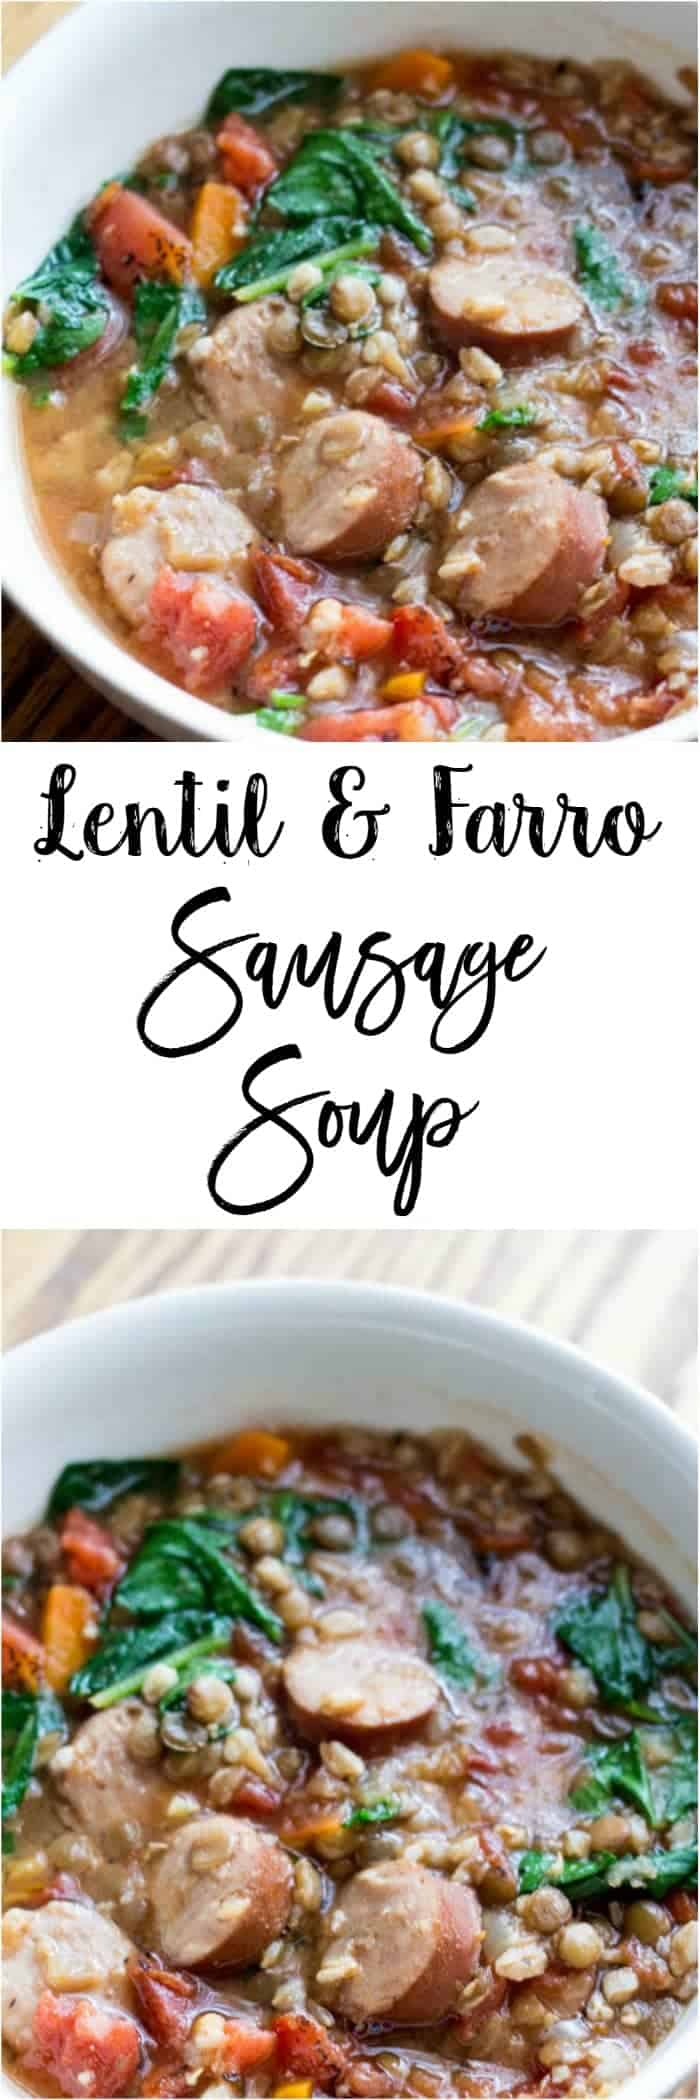 Lentil and Farro Sausage Soup